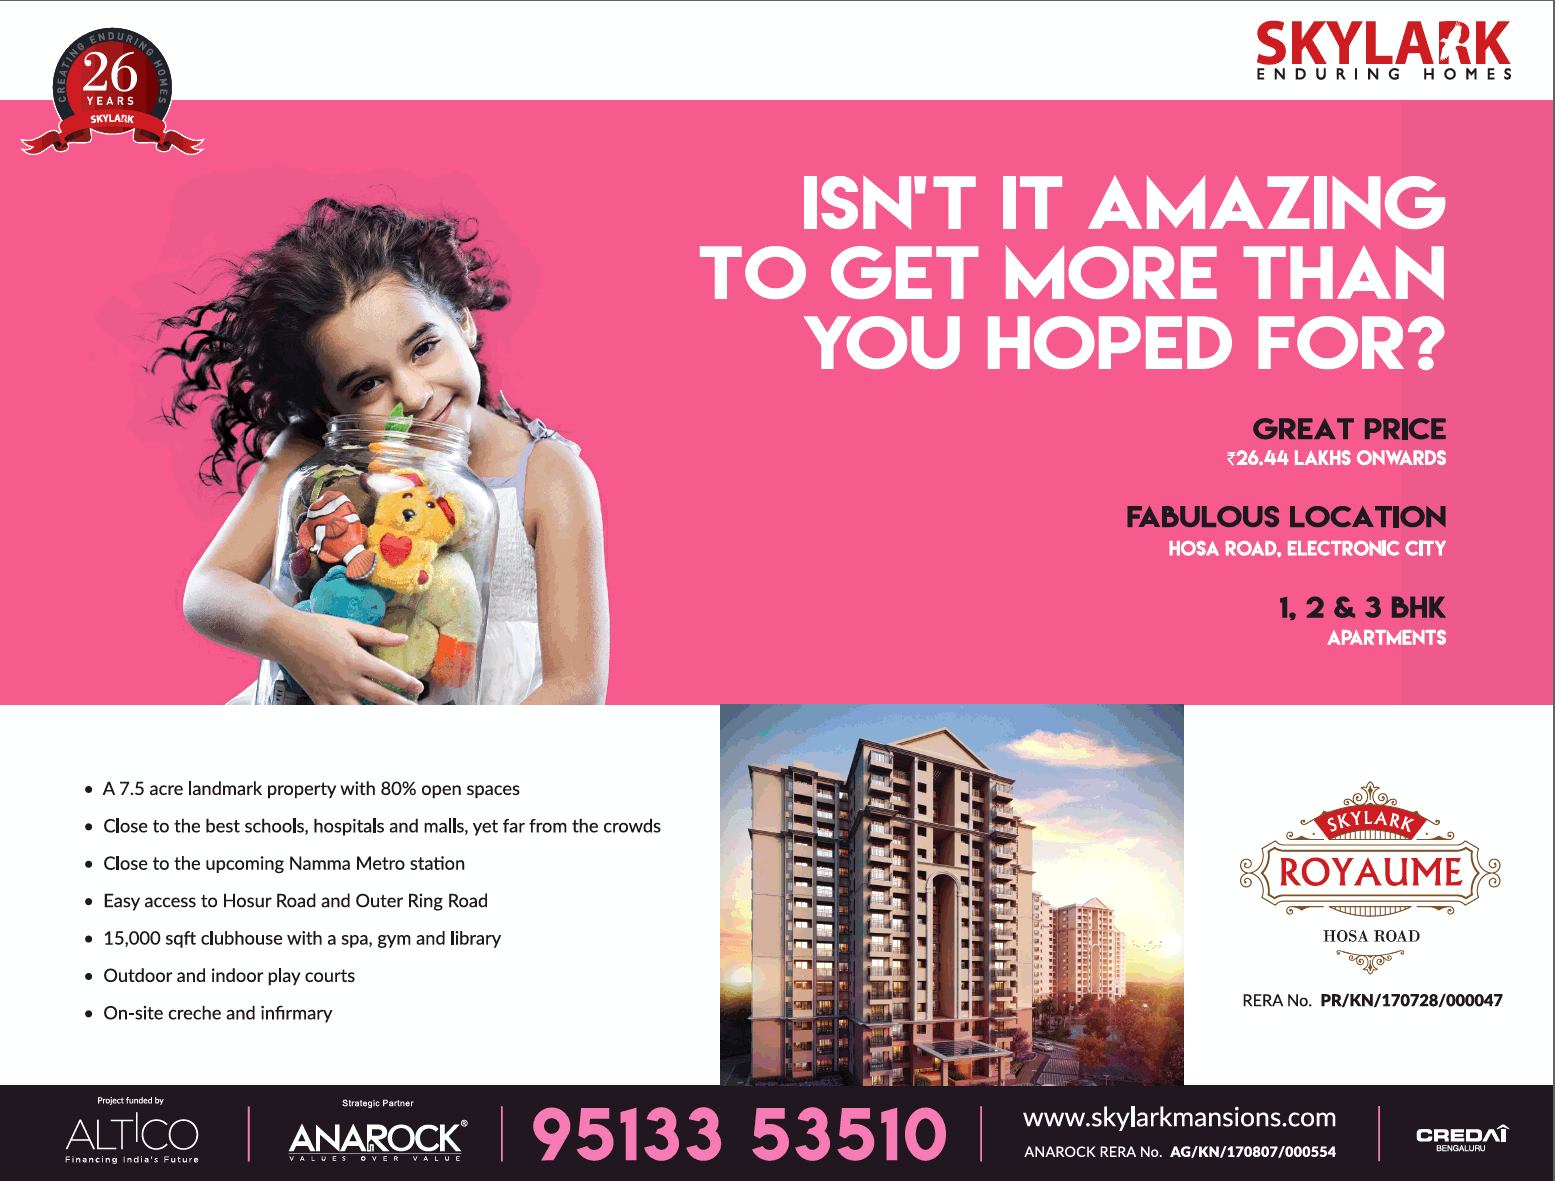 Skylark Enduring Homes 1 2 And 3 Bhk Apartments Ad